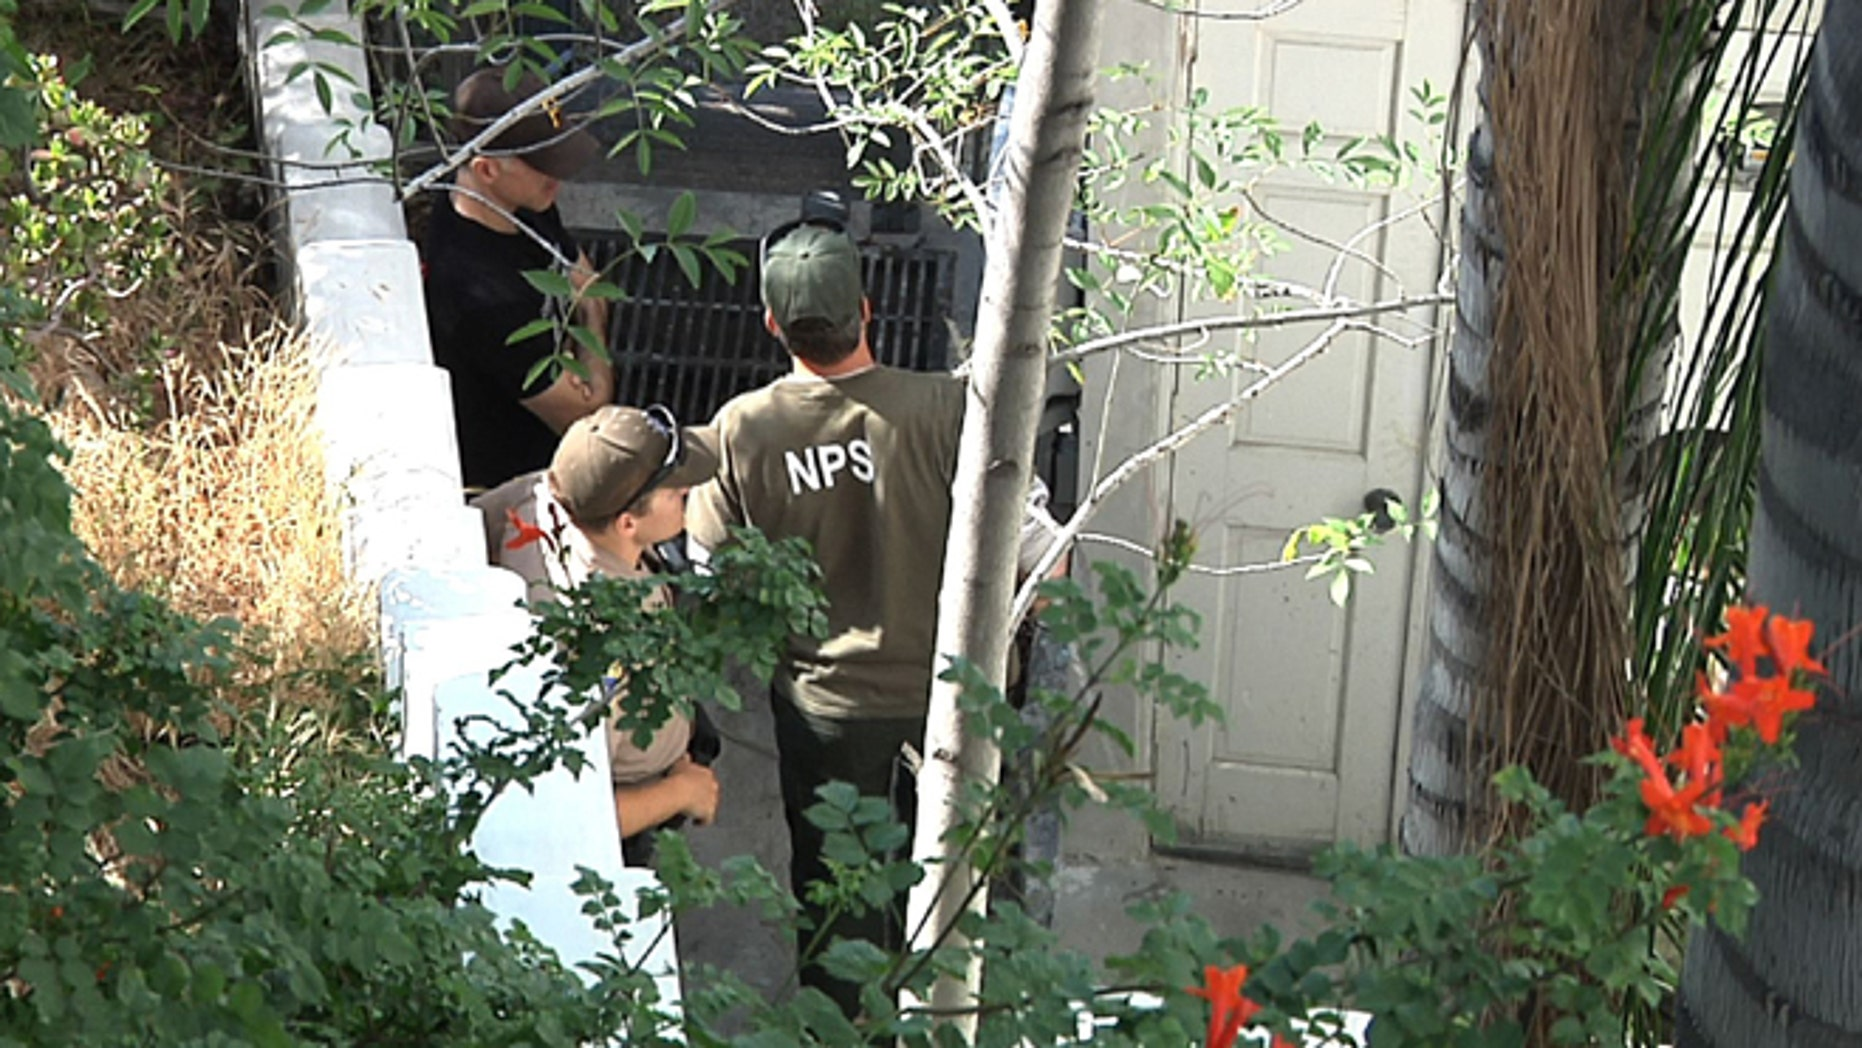 April 14, 2015: This frame from video shows officials from the National Park Service preparing to enter the crawl space of a house looking for a mountain lion in Los Angeles.